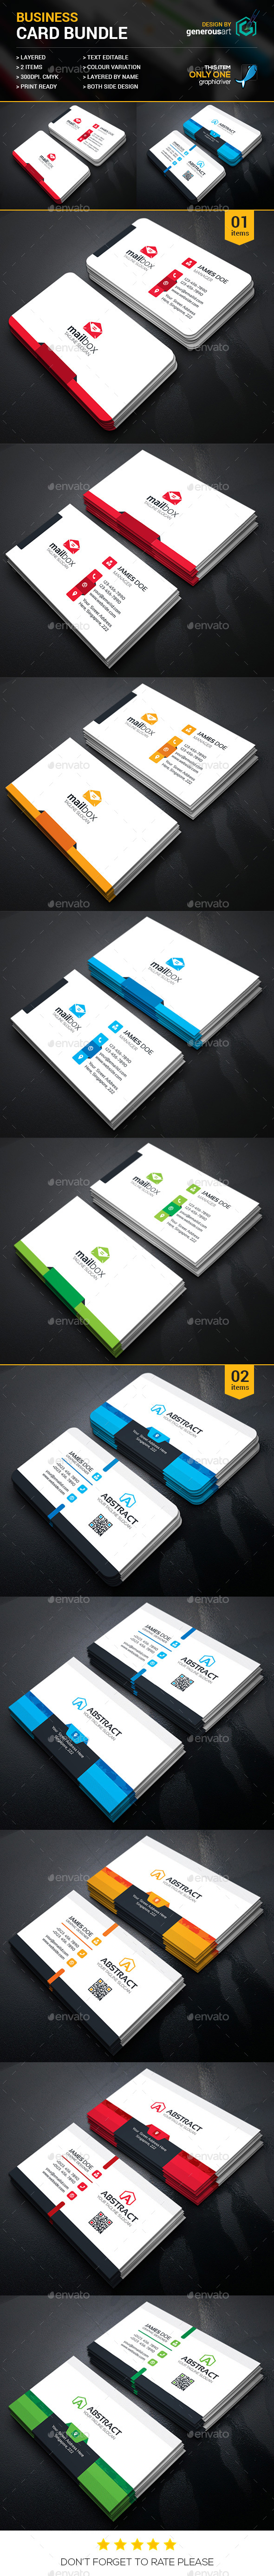 Business Card Bundle 2 in 1 vol.28